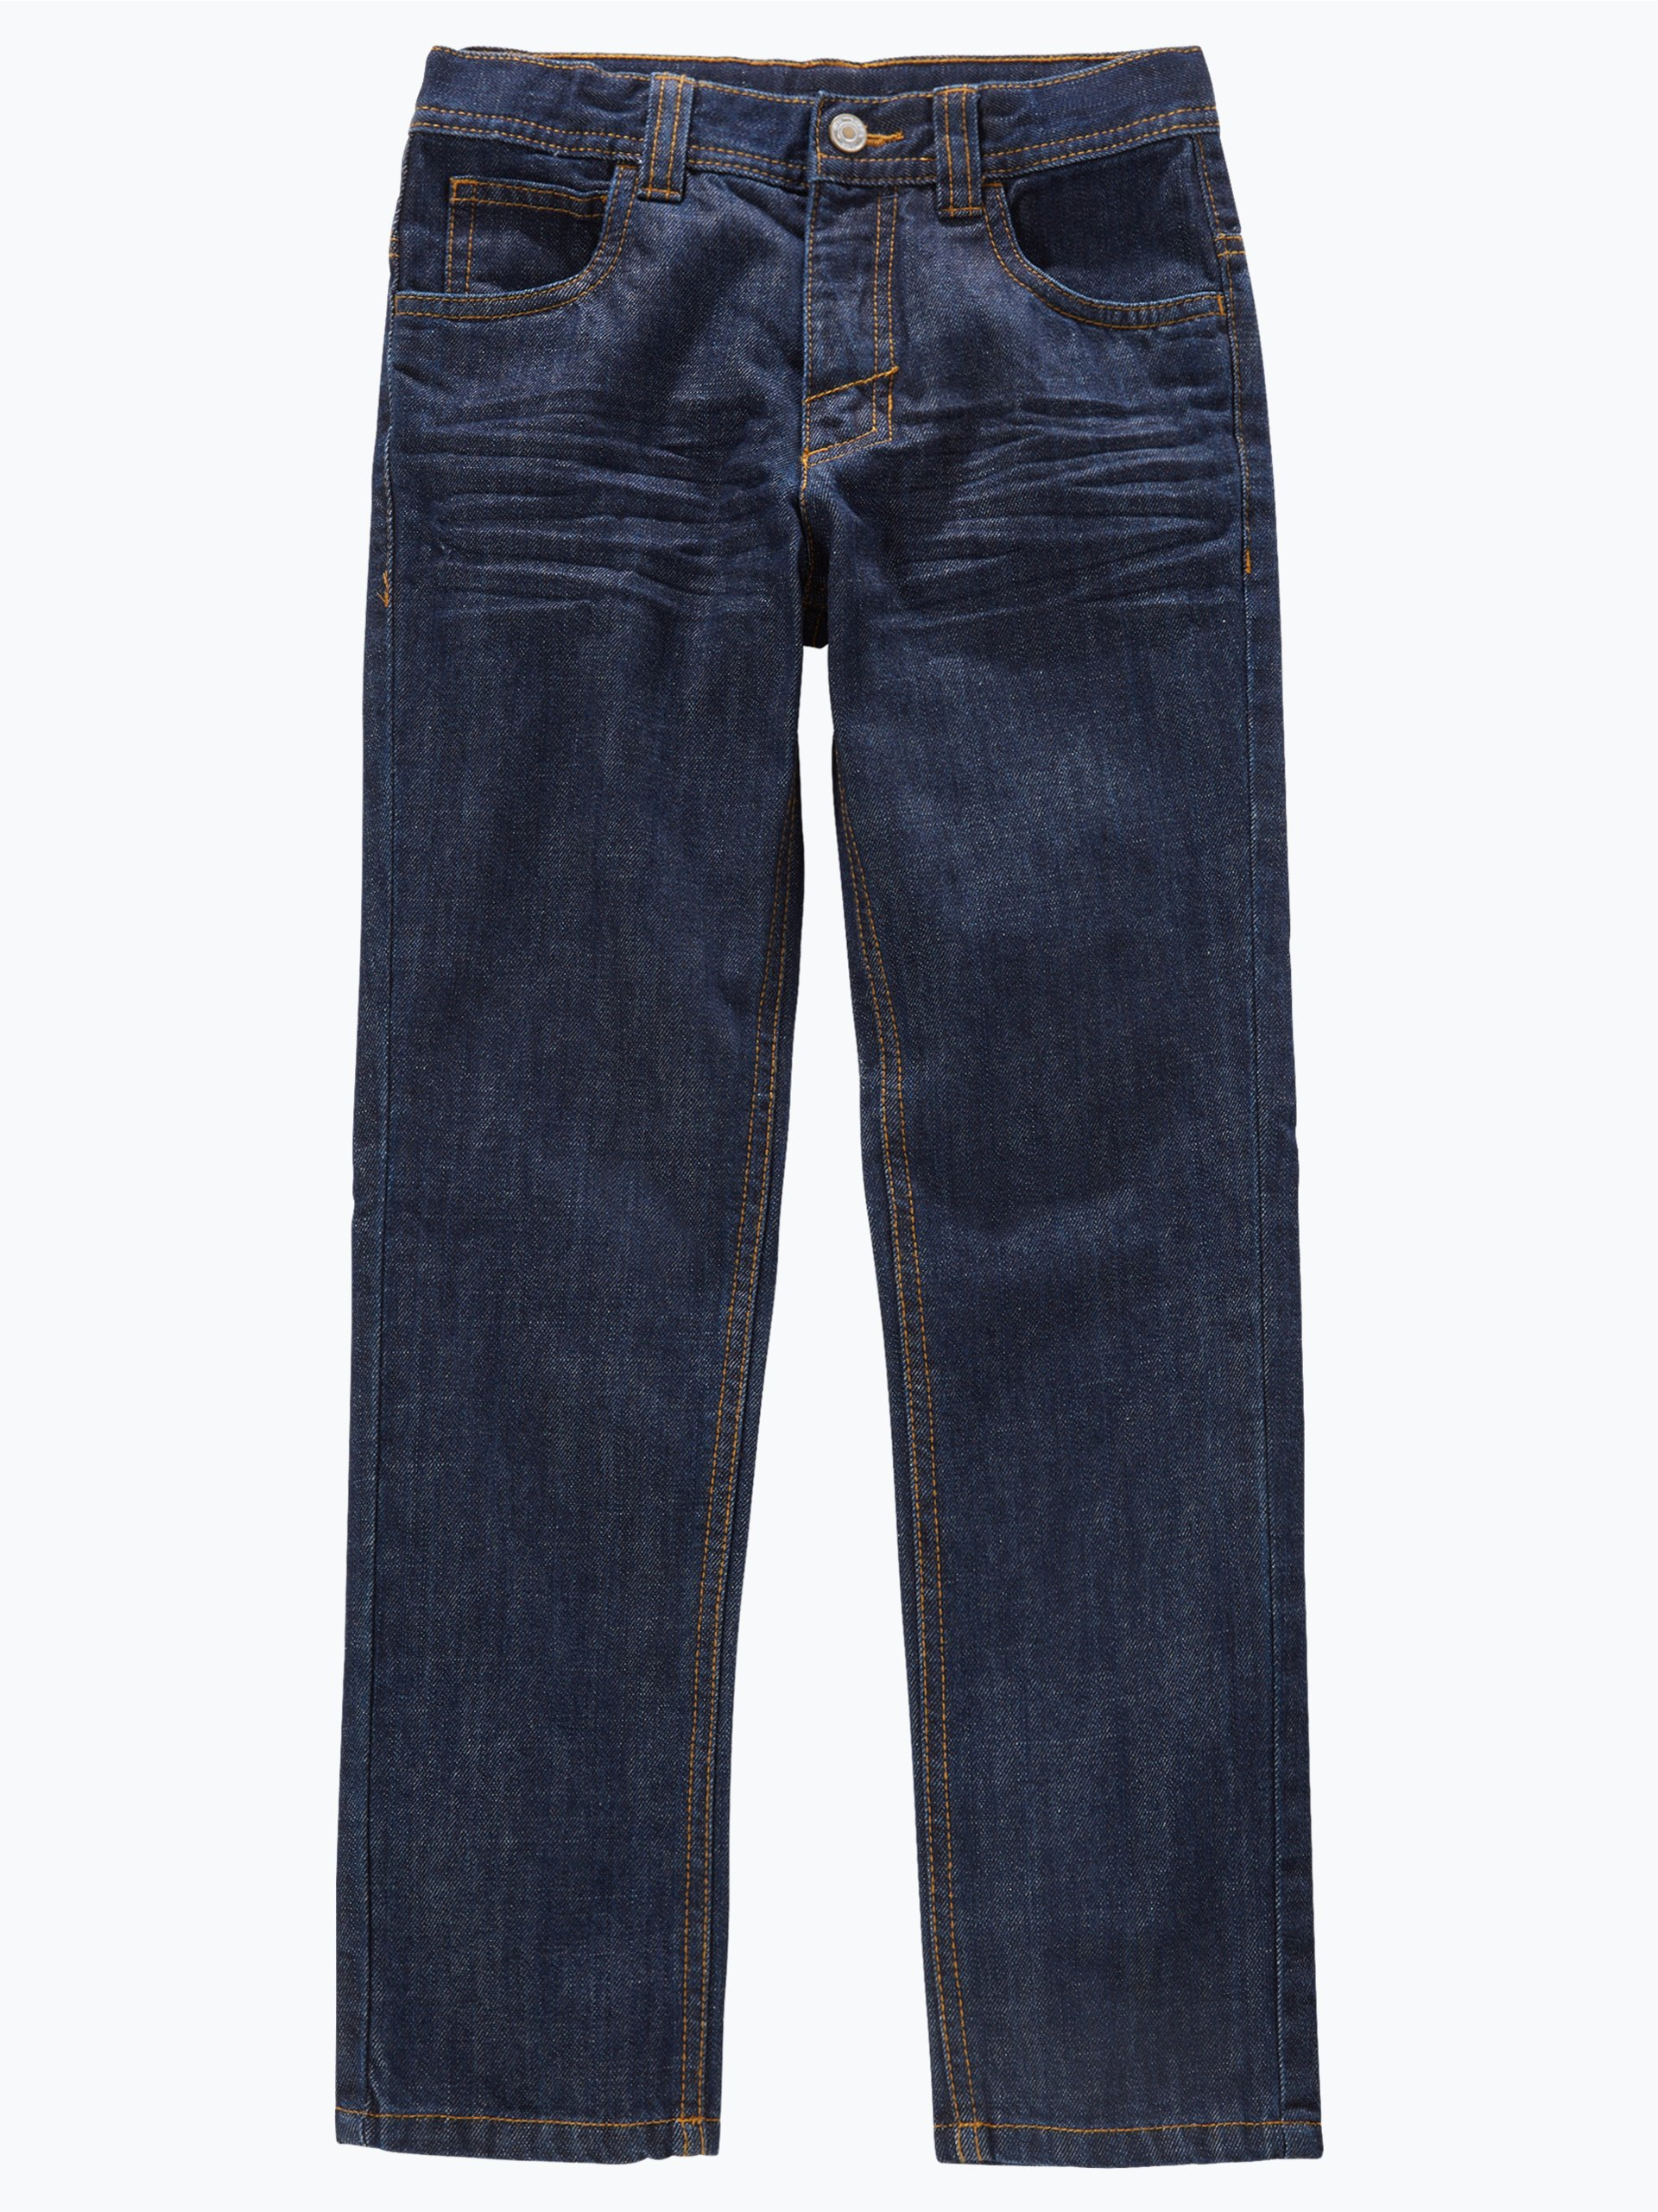 Tom Tailor Jungen Jeans - Tim Slim Fit Skinny Leg